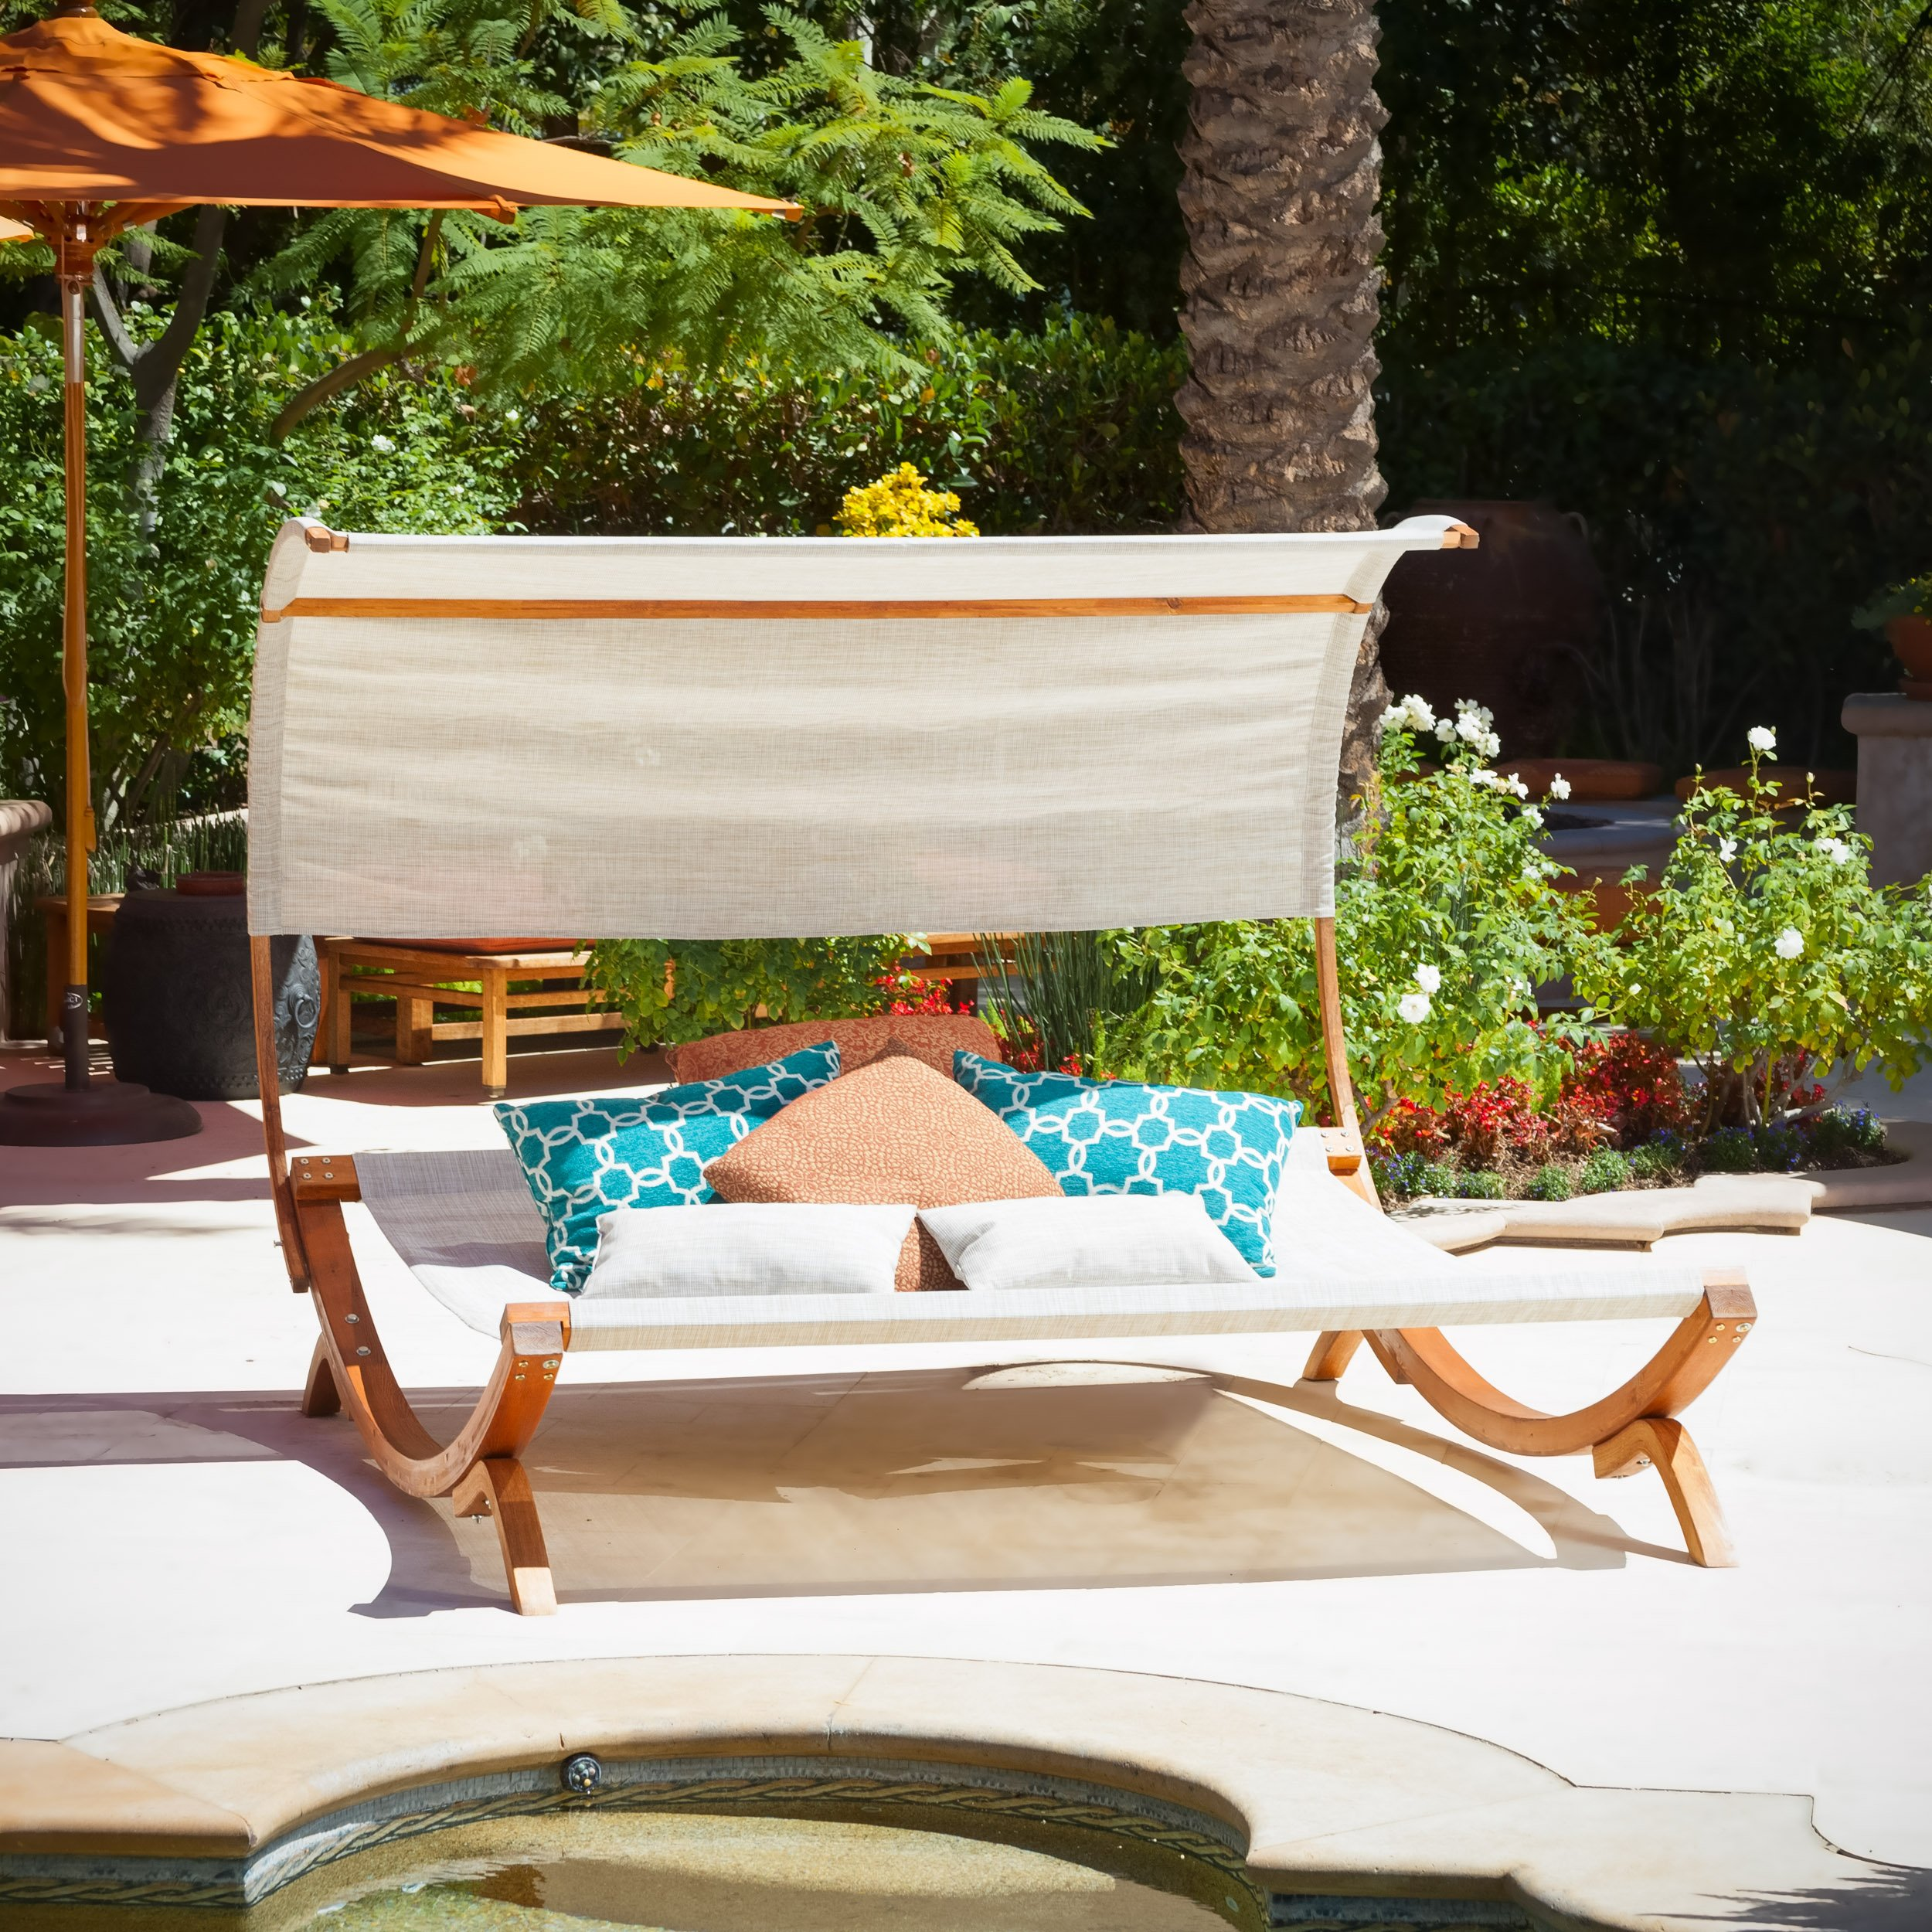 Christopher Knight Home 295296 Marrakech Sunbed with Canopy, Teak Stained Wood/Off-White Fabric by Christopher Knight Home (Image #1)